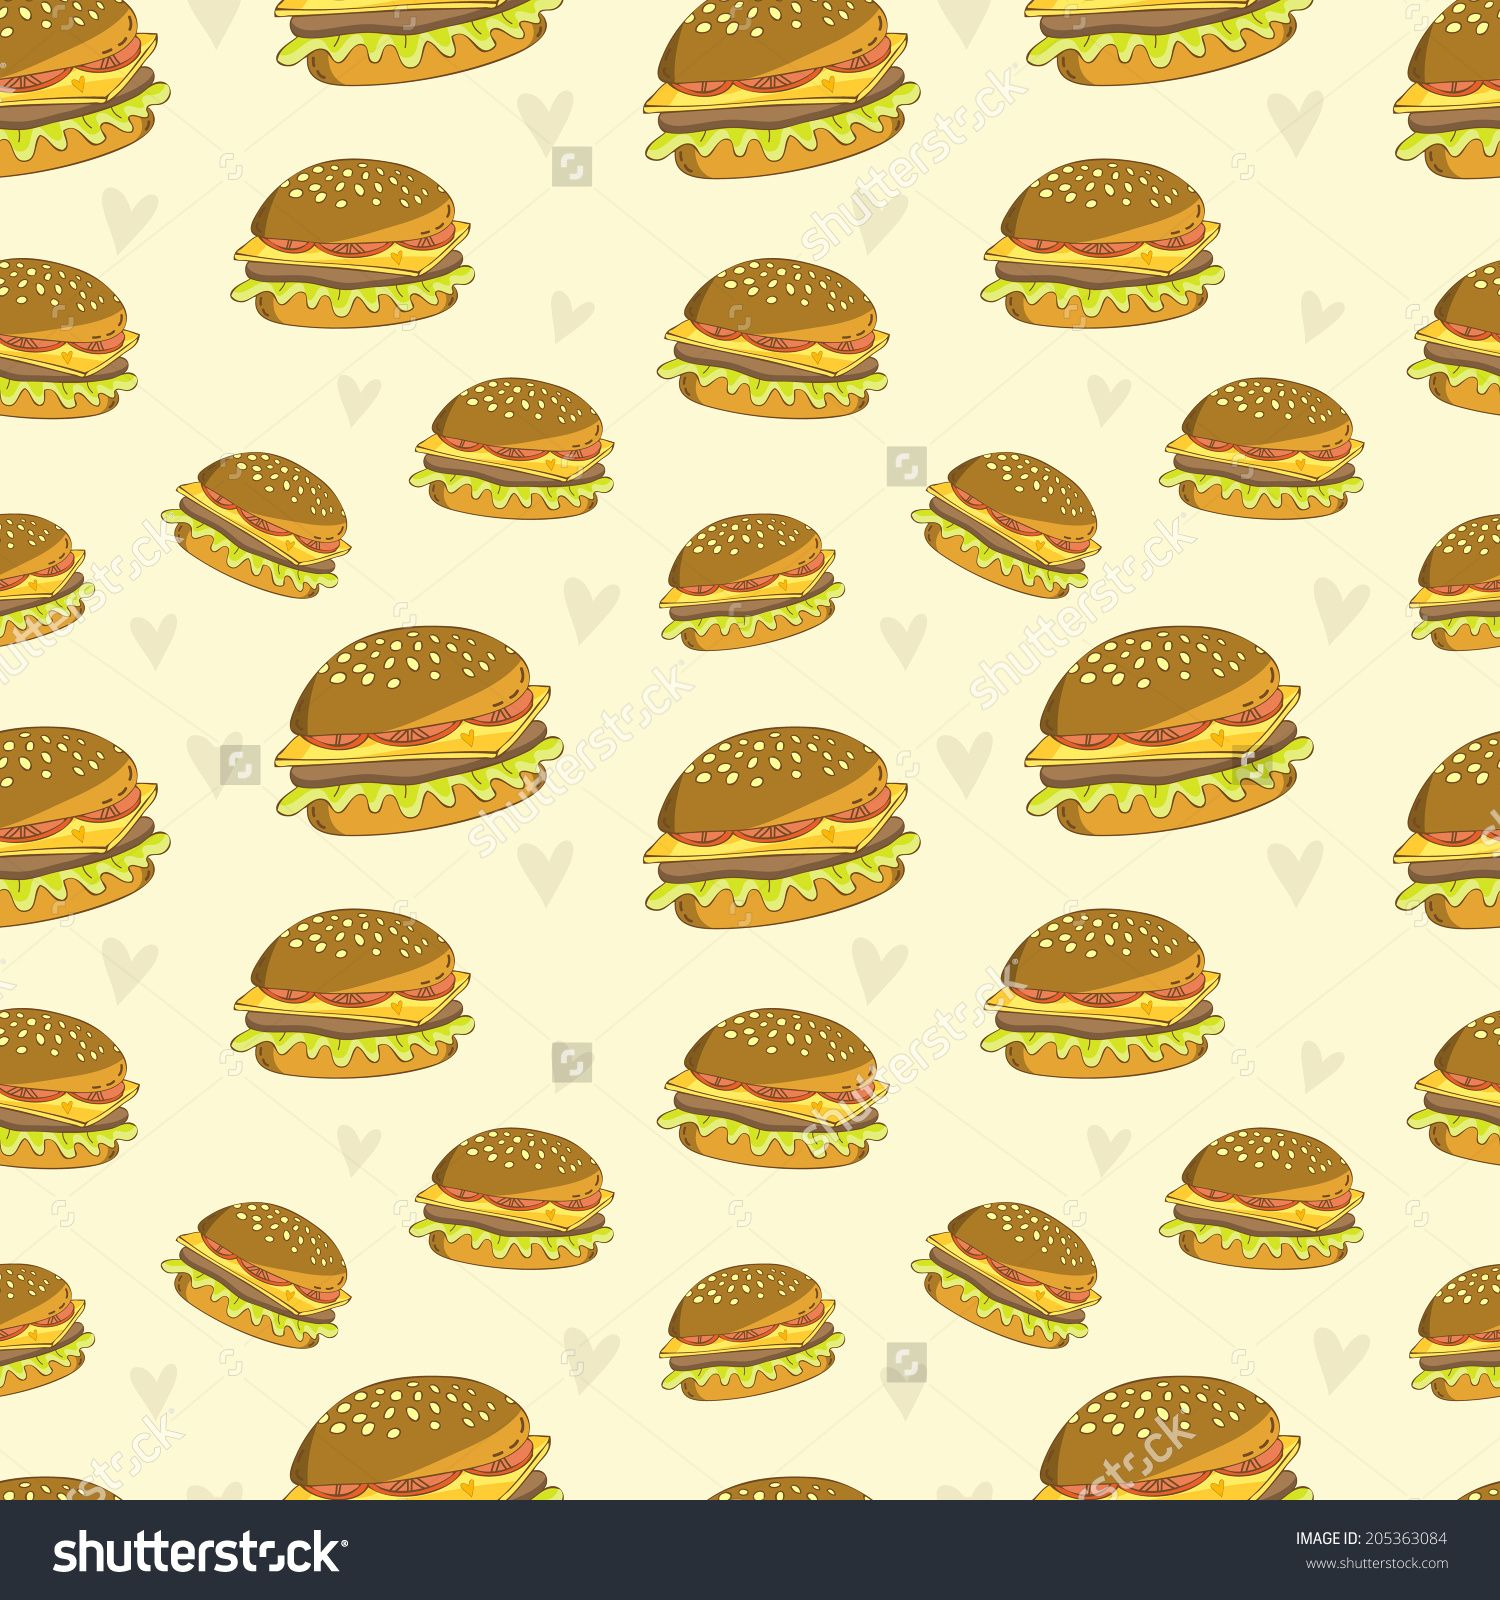 Wallpapers pattern fills web page backgrounds surface textures - Seamless Pattern With Cute Hamburgers Used For Wallpaper Pattern Fills Web Page Background